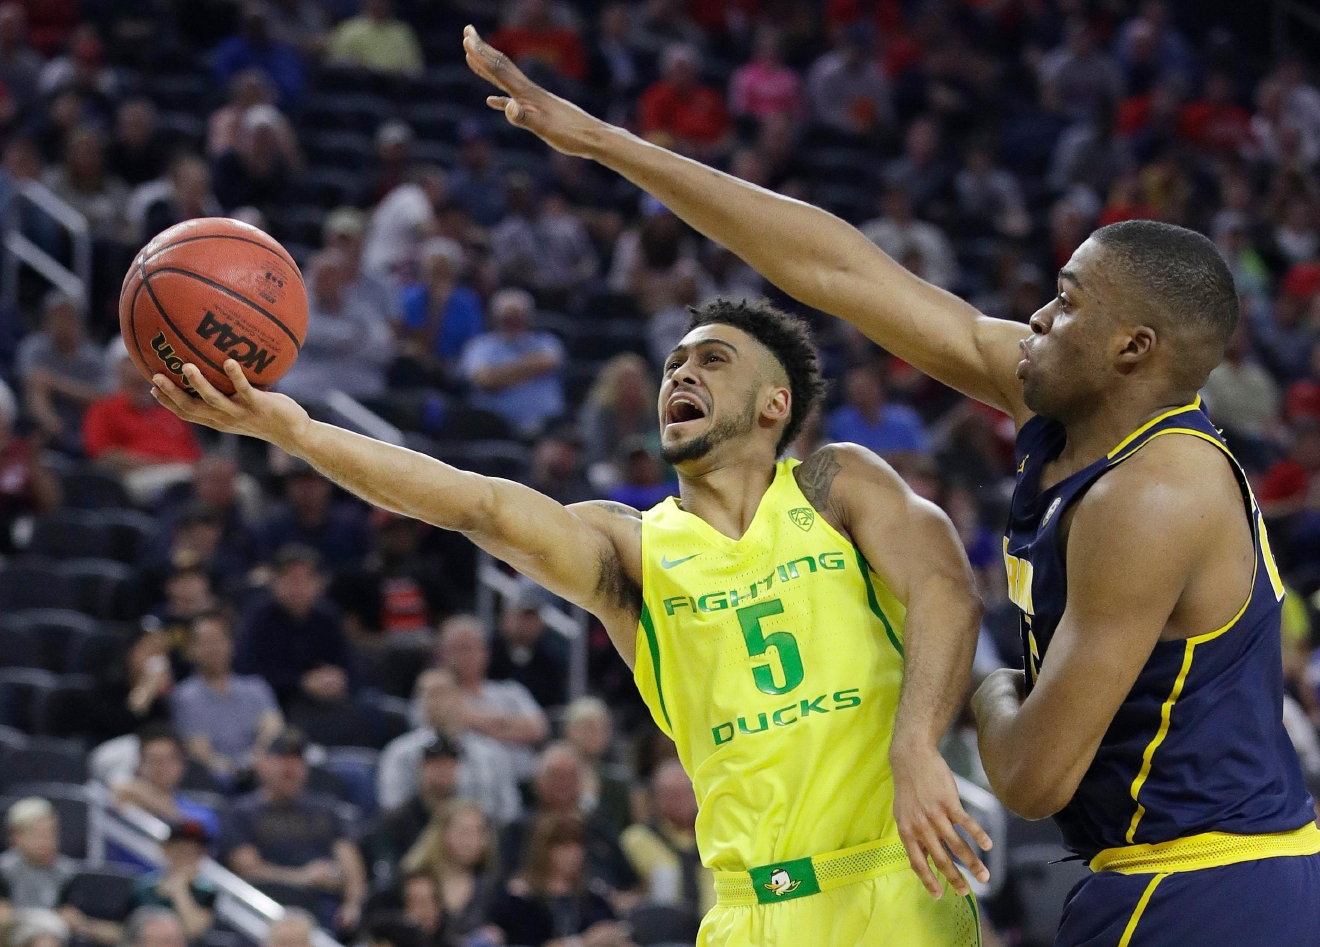 Oregon's Tyler Dorsey shoots around California's Kingsley Okoroh during the first half of an NCAA college basketball game in the semifinals of the Pac-12 tournament Friday, March 10, 2017, in Las Vegas. (AP Photo/John Locher)